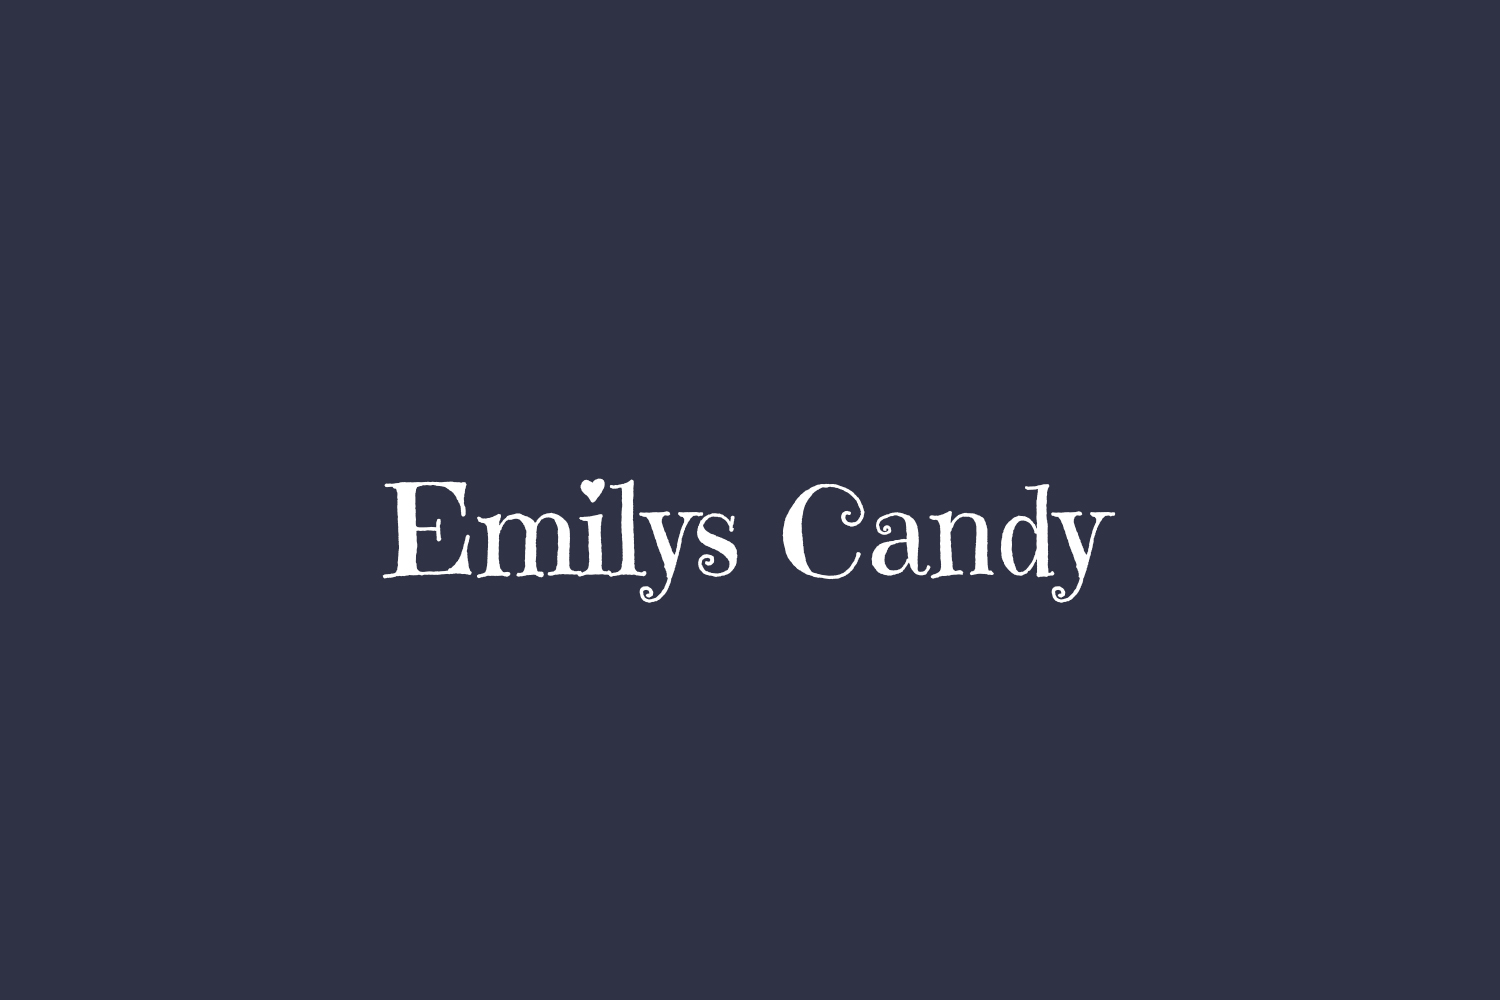 Emilys Candy